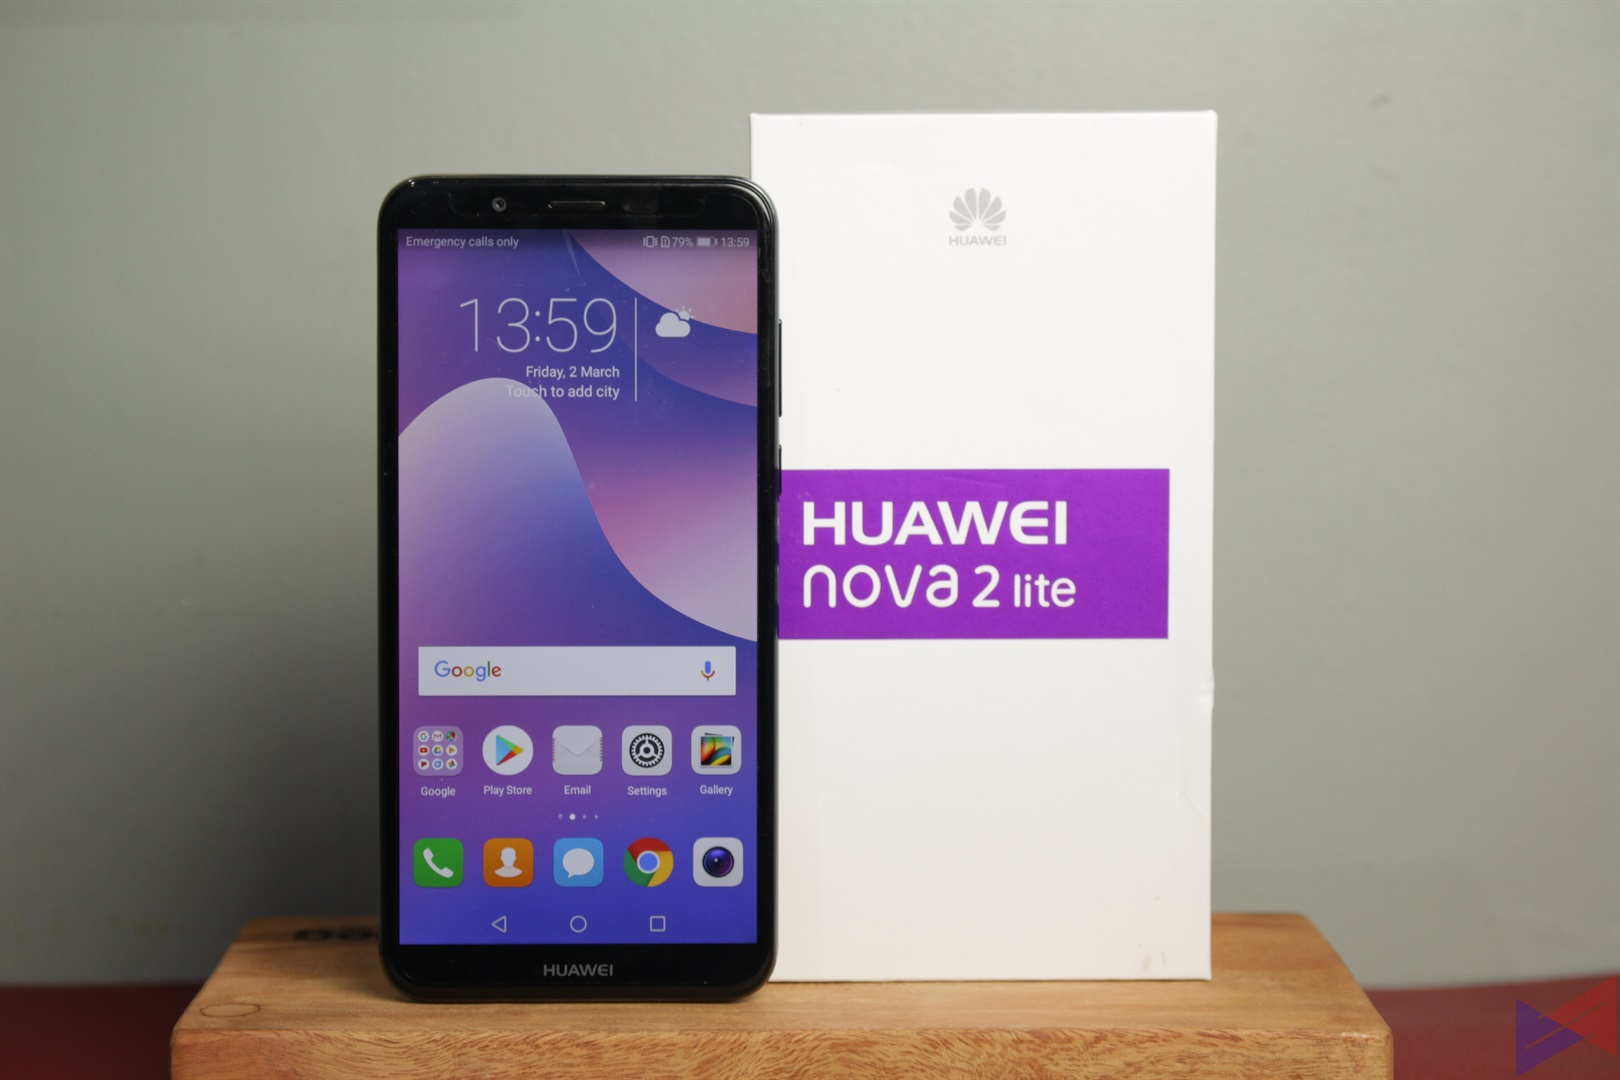 b5abb224a488 Meet the Huawei Nova 2 Lite with an 18 9 Display and Dual Rear Cameras